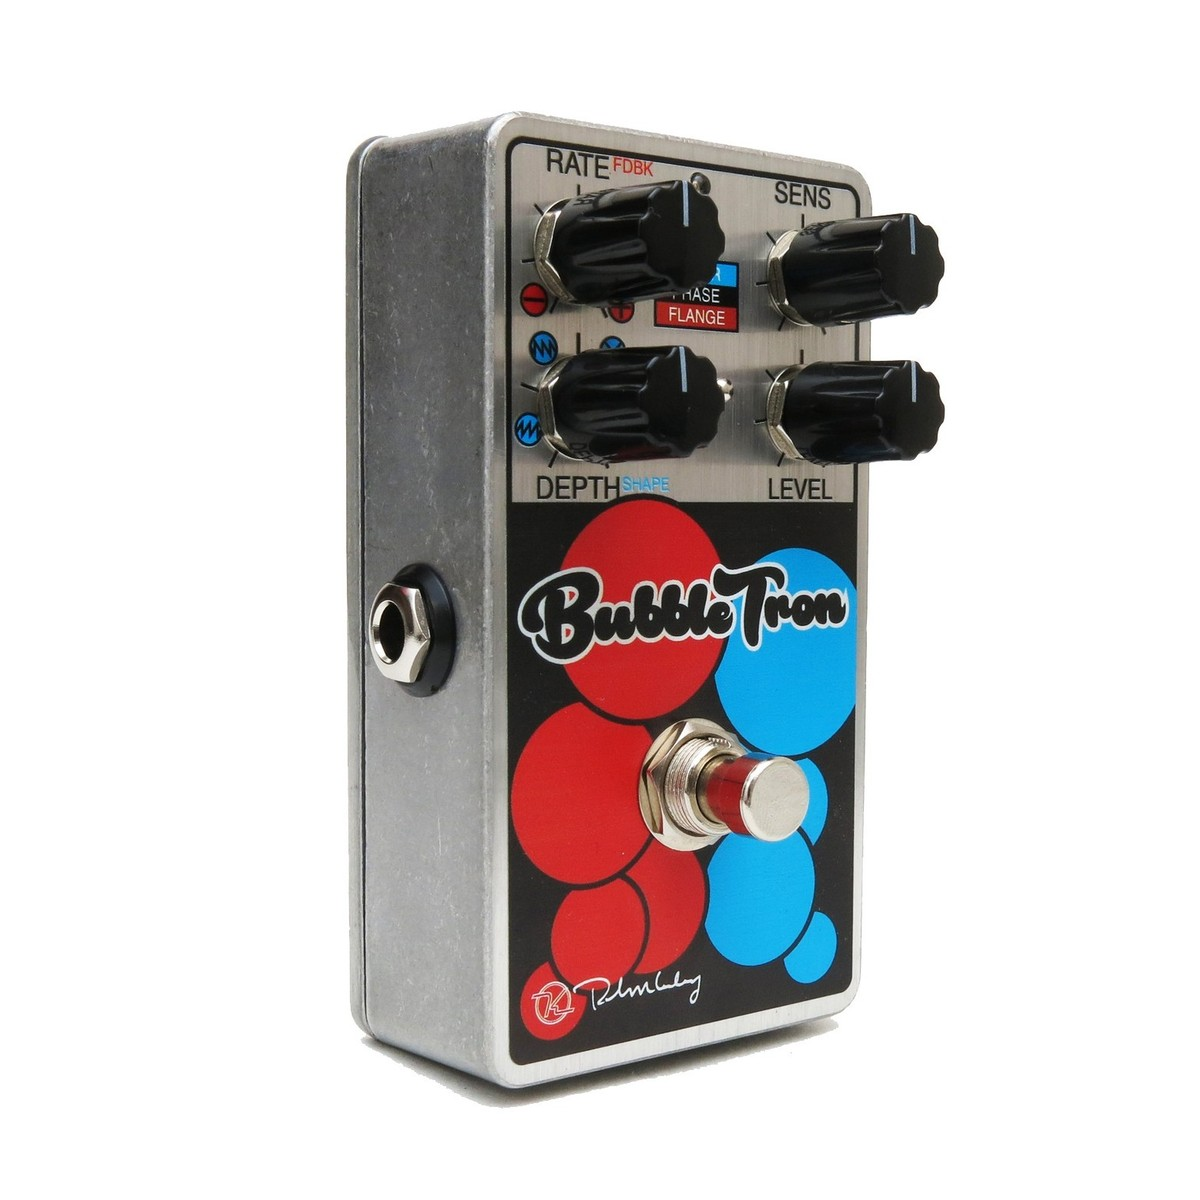 DISC Keeley Bubbletron Dynamic Flanger Phaser | Gear4music